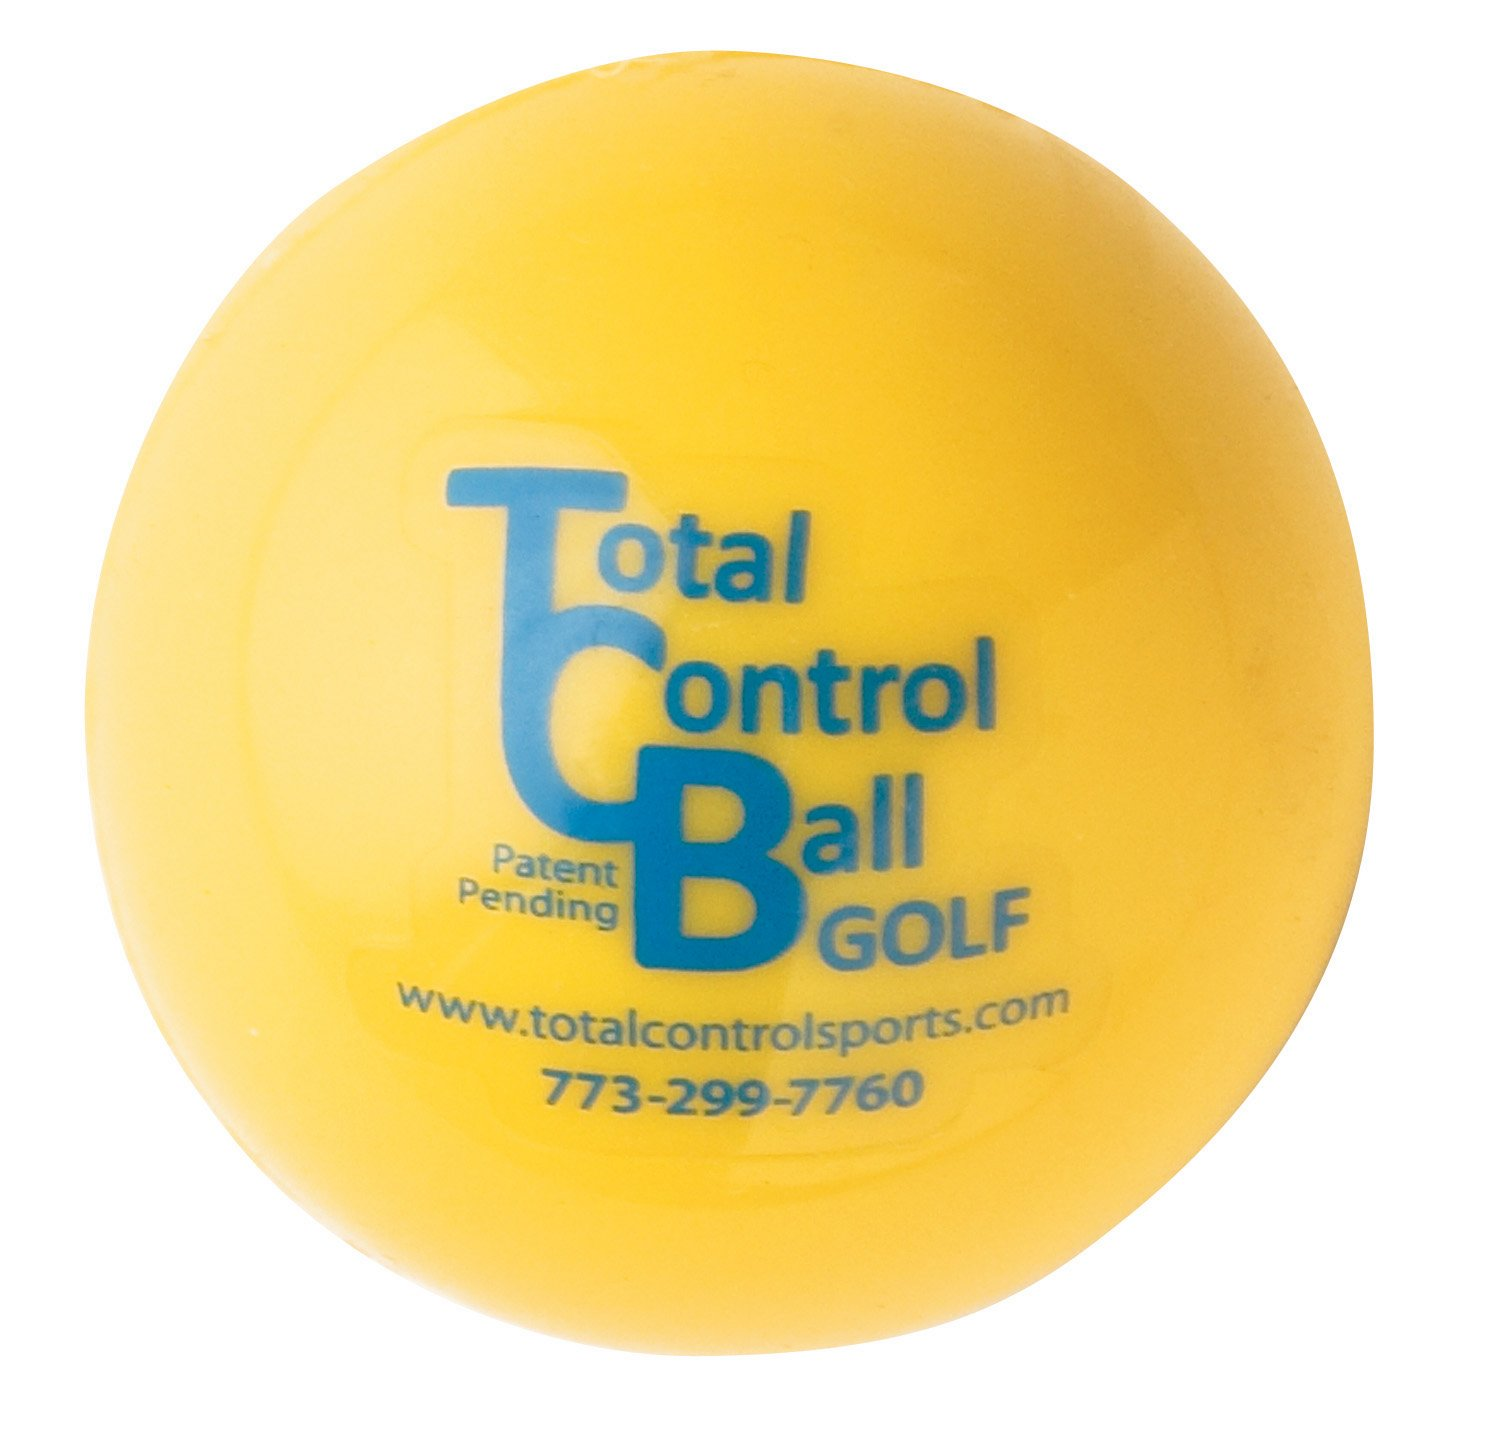 Total Control Sports Golf Ball with Blue Dot (Pack of 6), Yellow